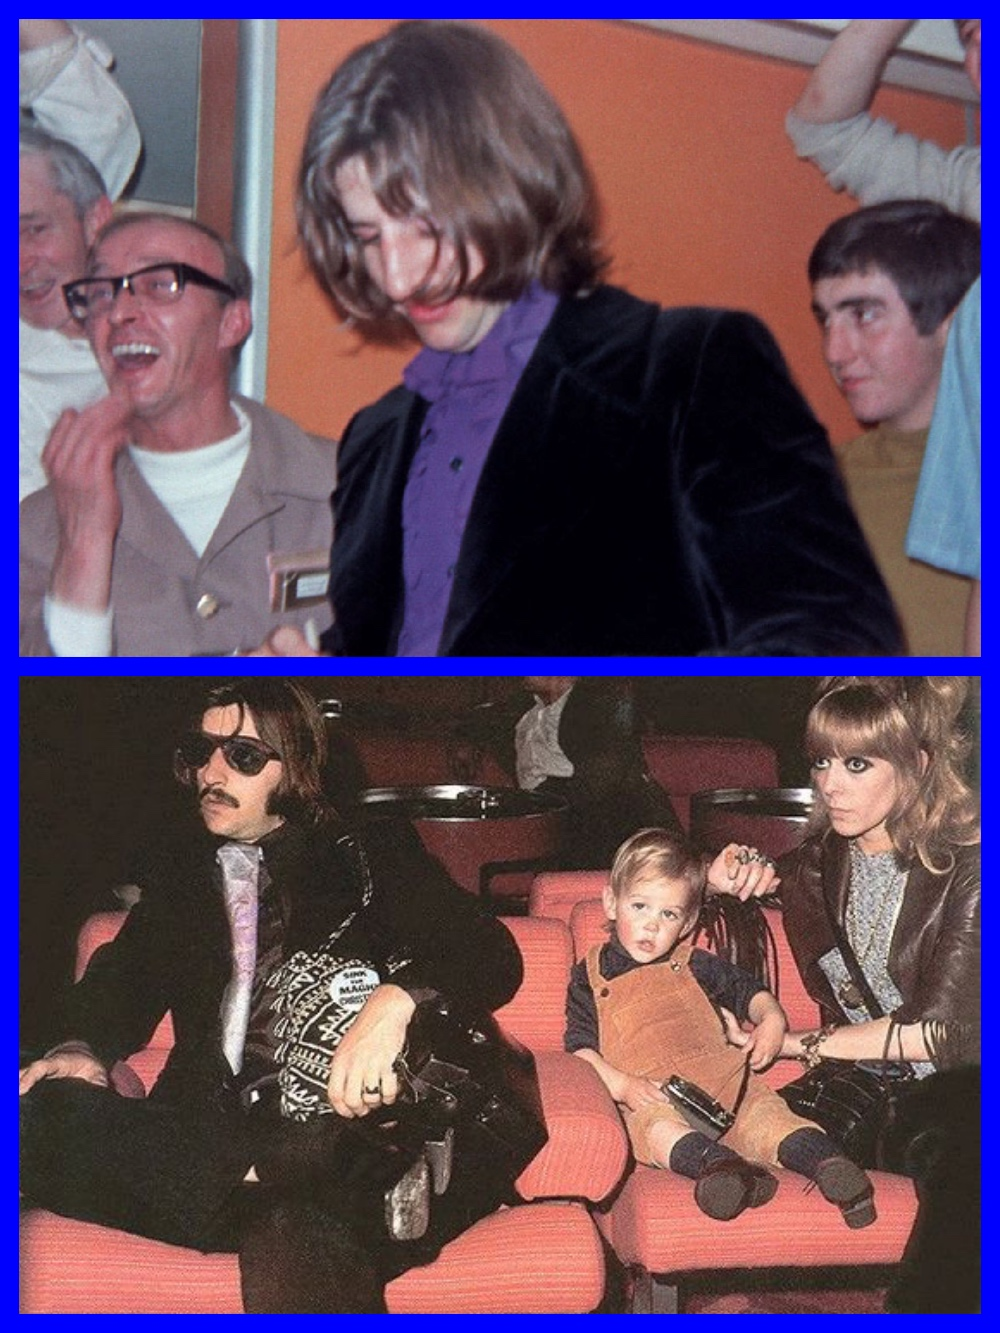 Ringo Starr, Peter Sellers, QE2, Cunard Line, The Magic Christian, 1969 Celebrities, Michael L. Grace, It's The Love Boat, Cruising the past, cruise history, cruise, liners, steamships, titanic, normandie, ocean liner, white star line, ss america, steamship, travel history, historian